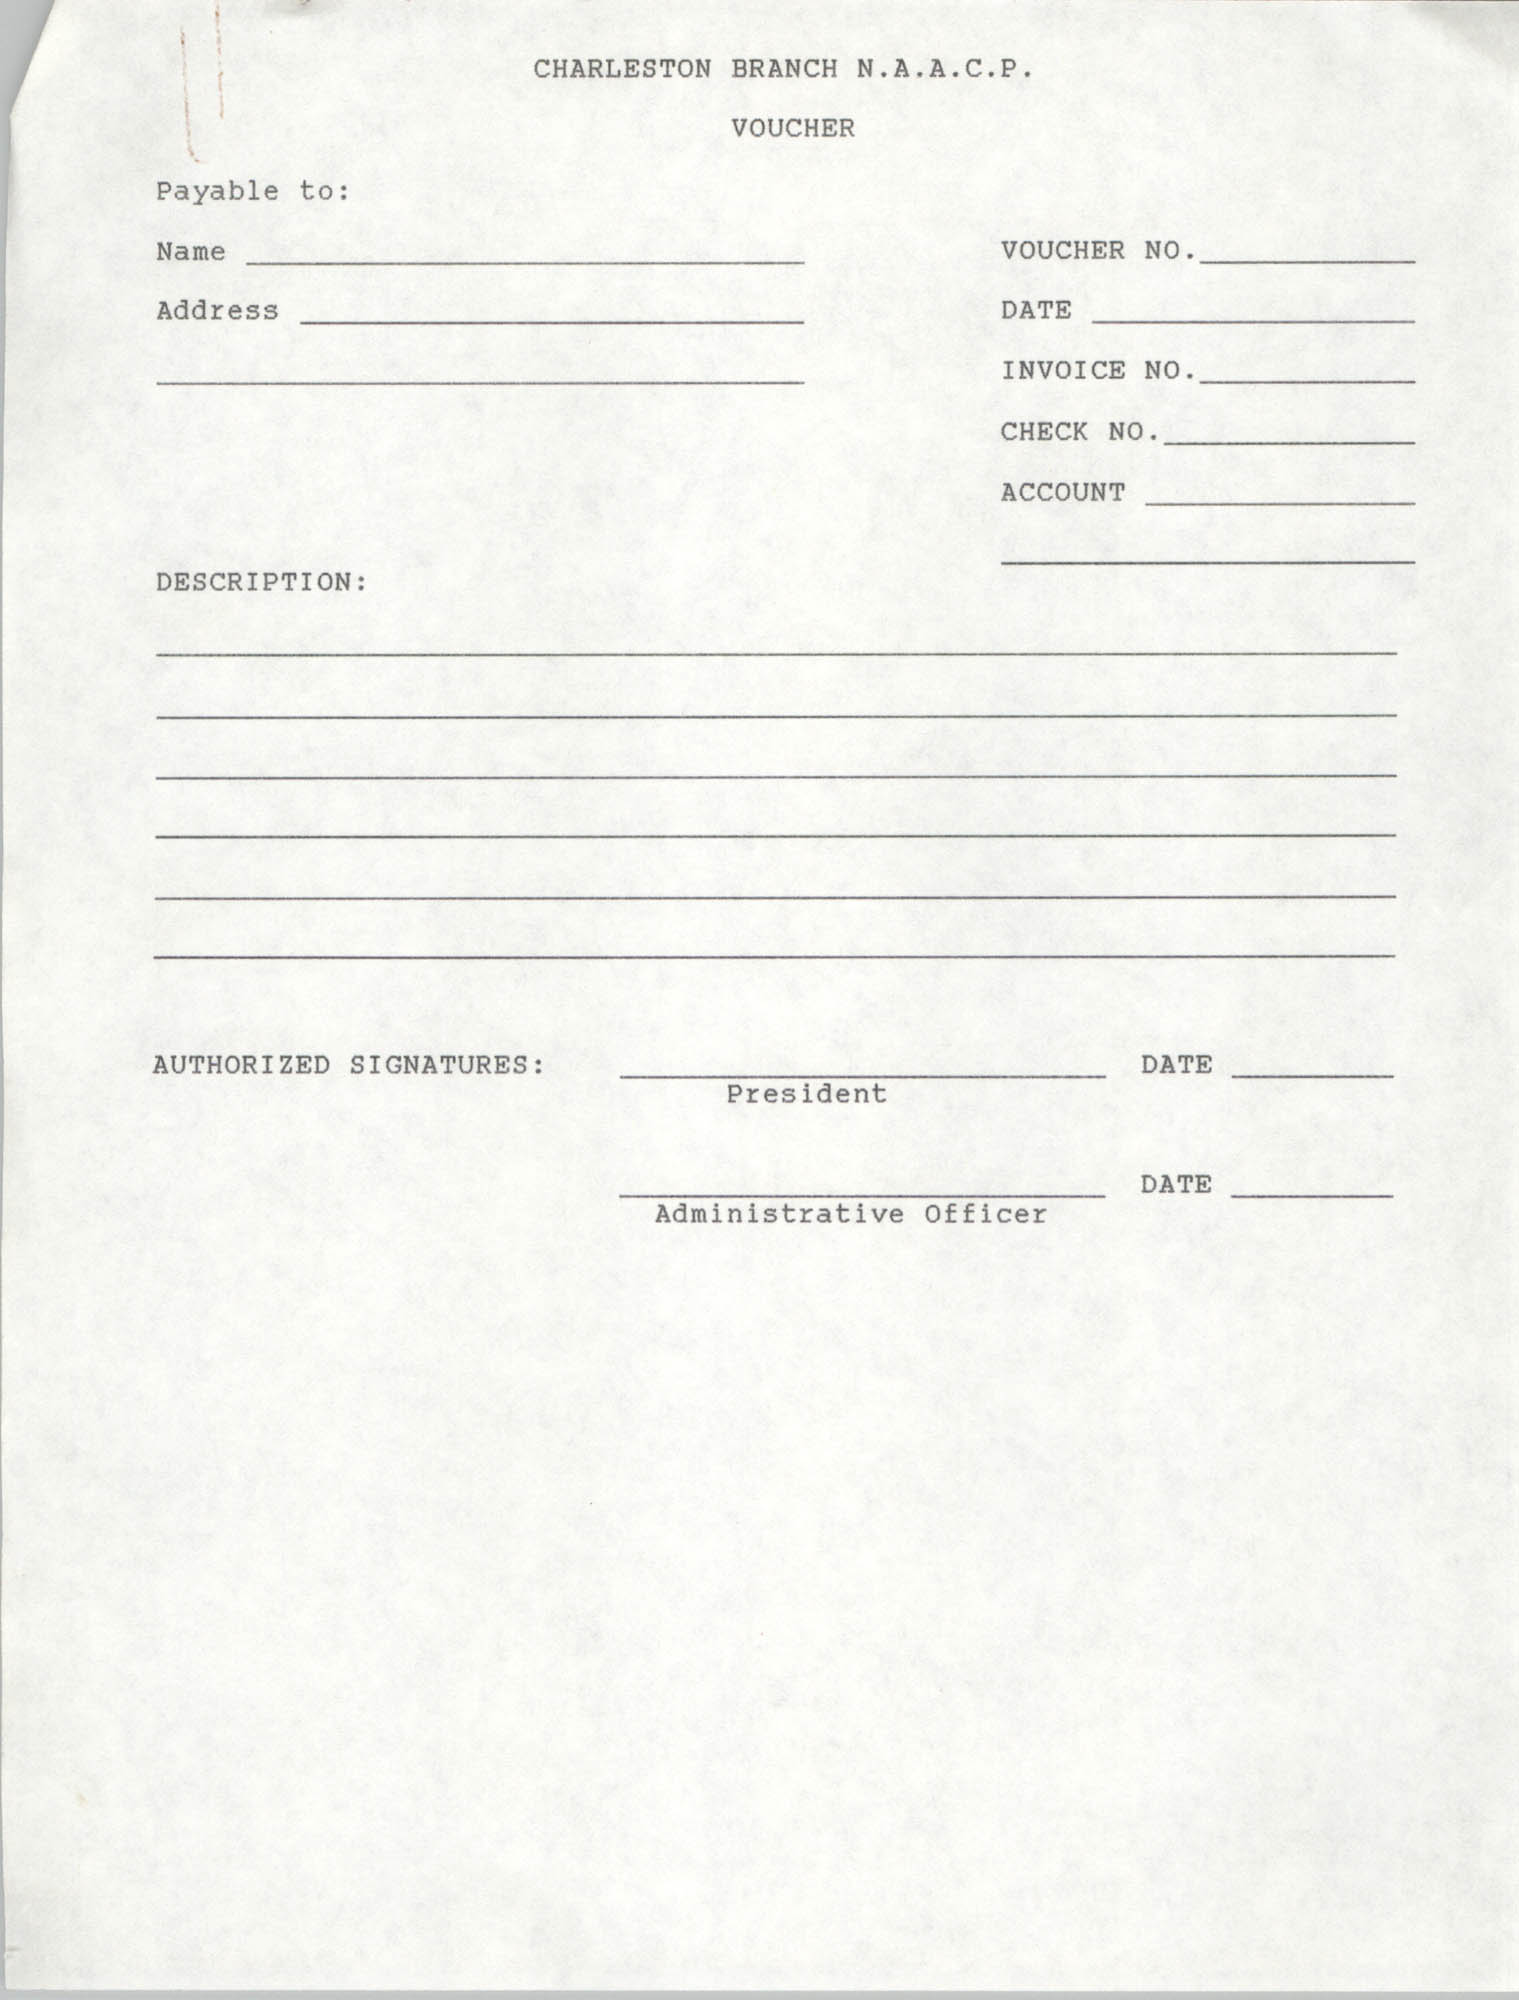 Blank Form, Voucher, National Association for the Advancement of Colored People